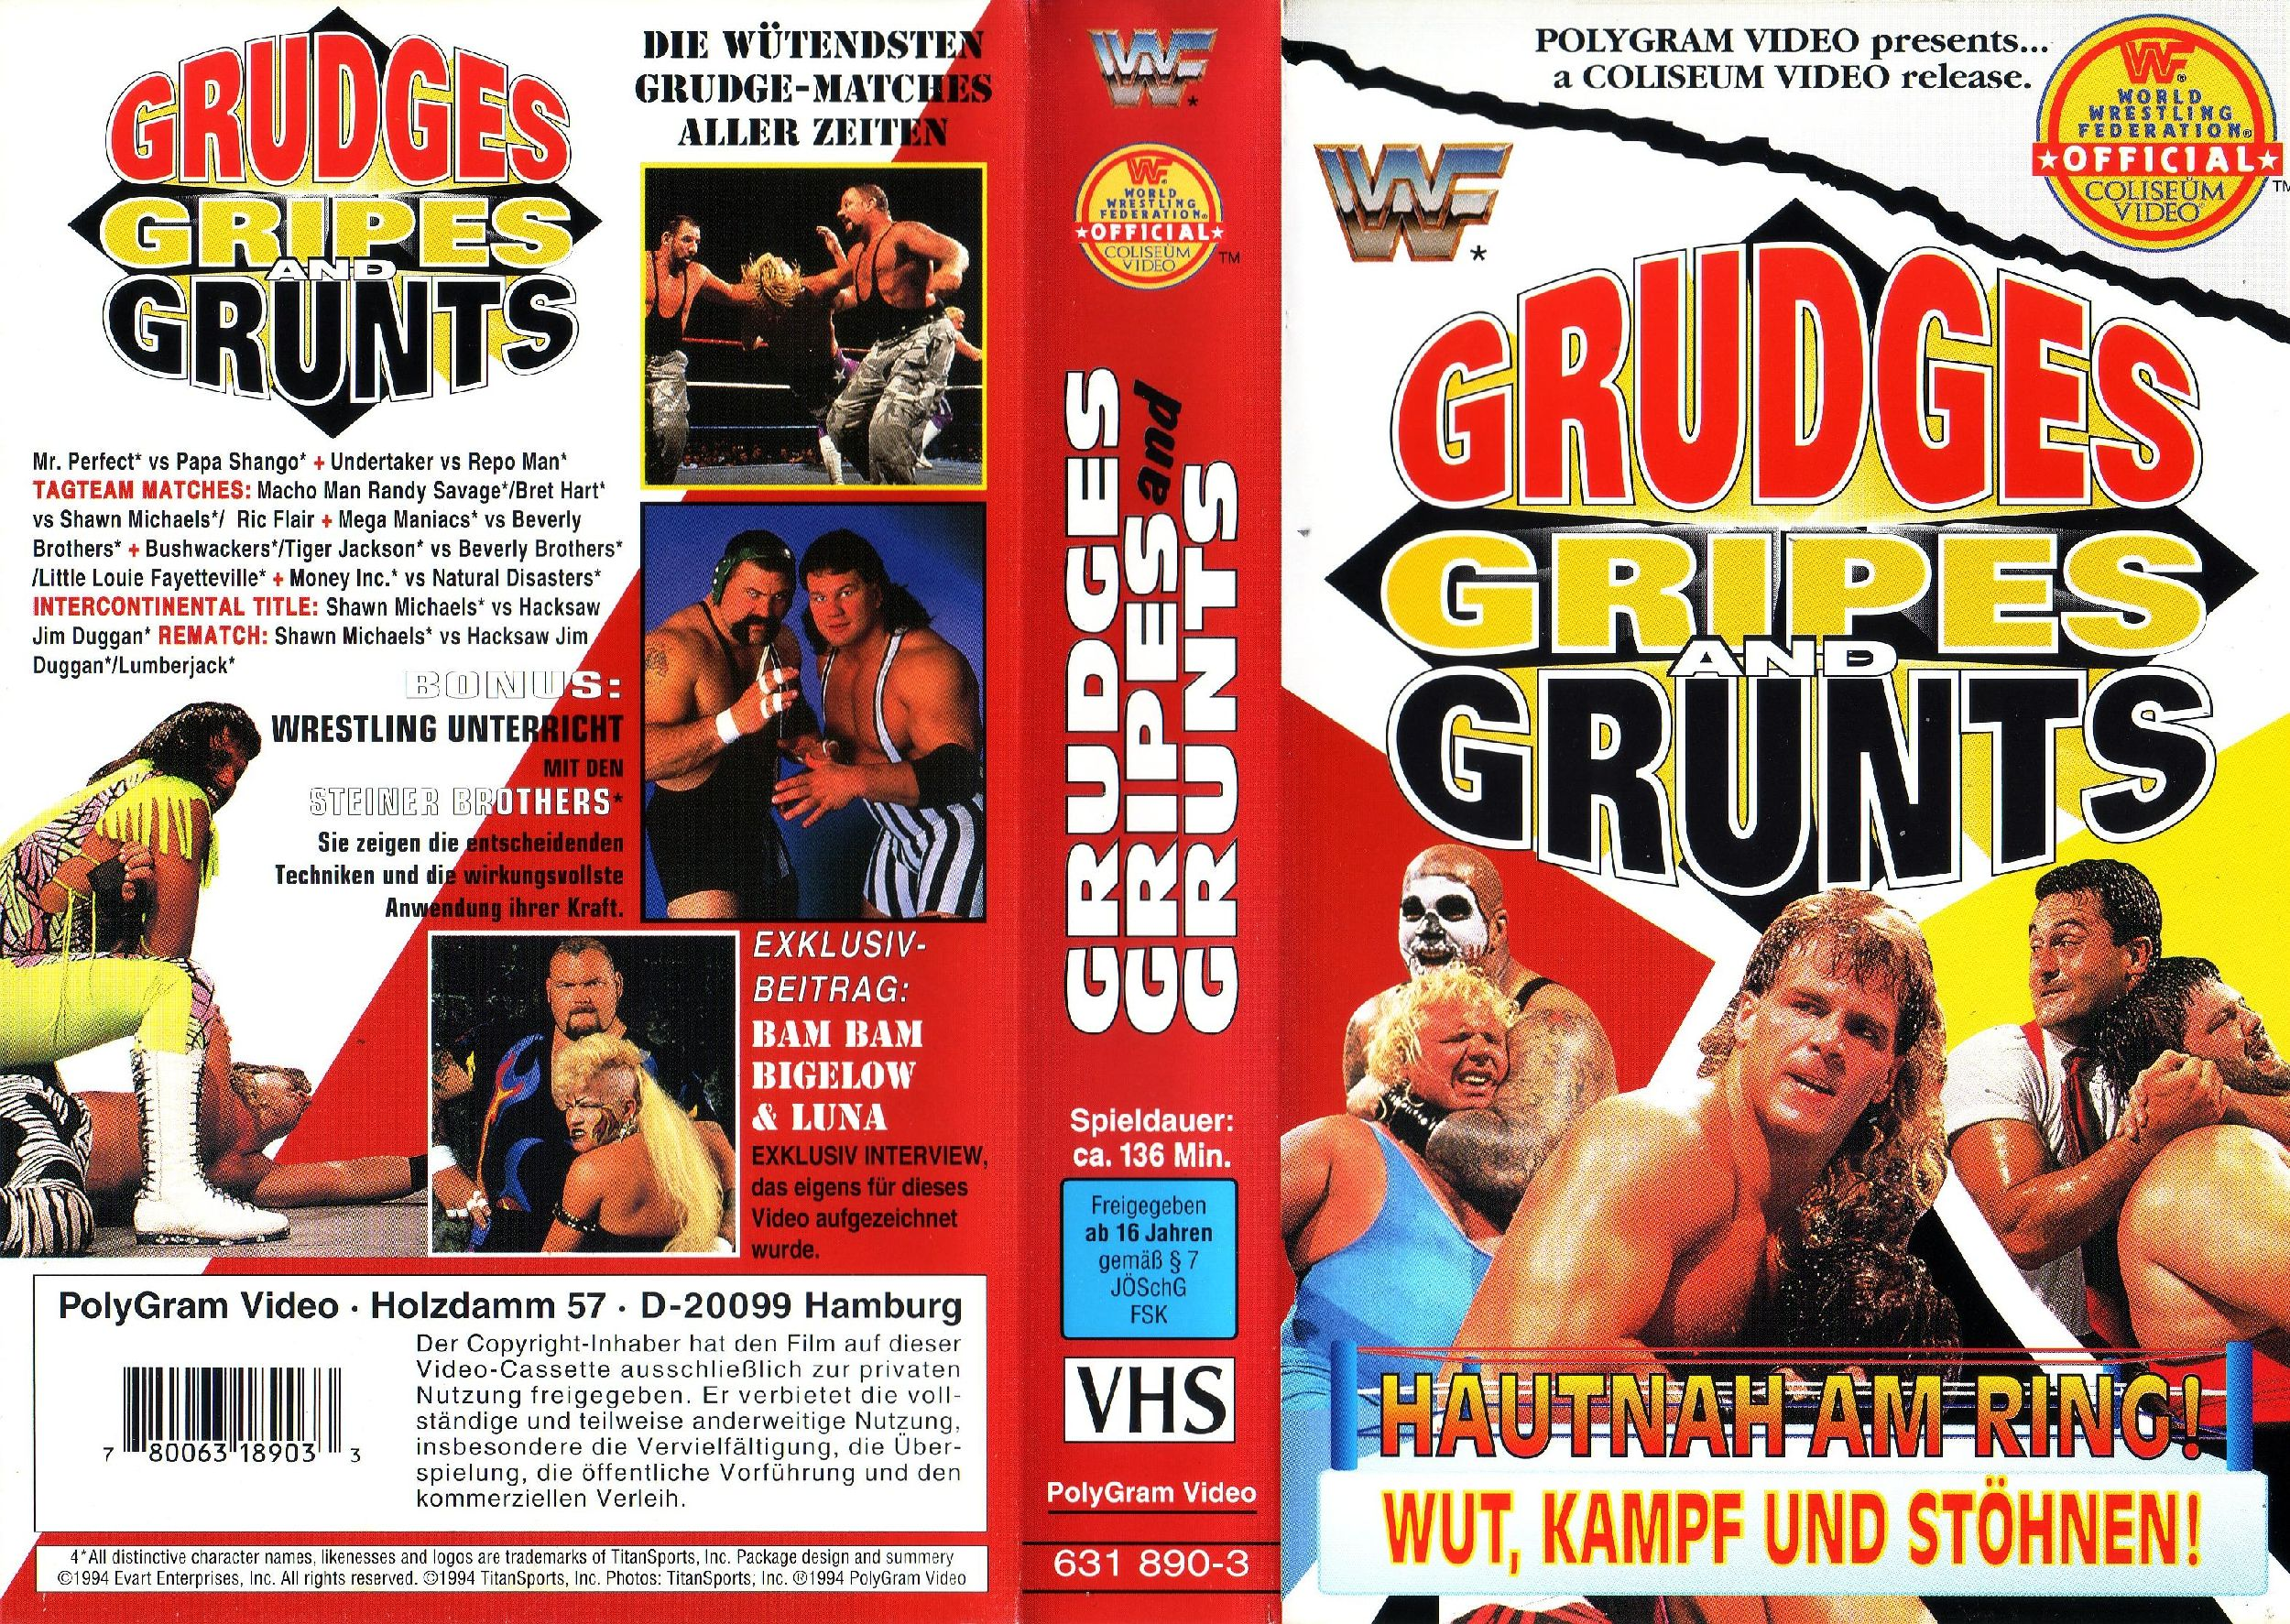 WWF_Grudges_Gripes_and_Grunts_-_Cover